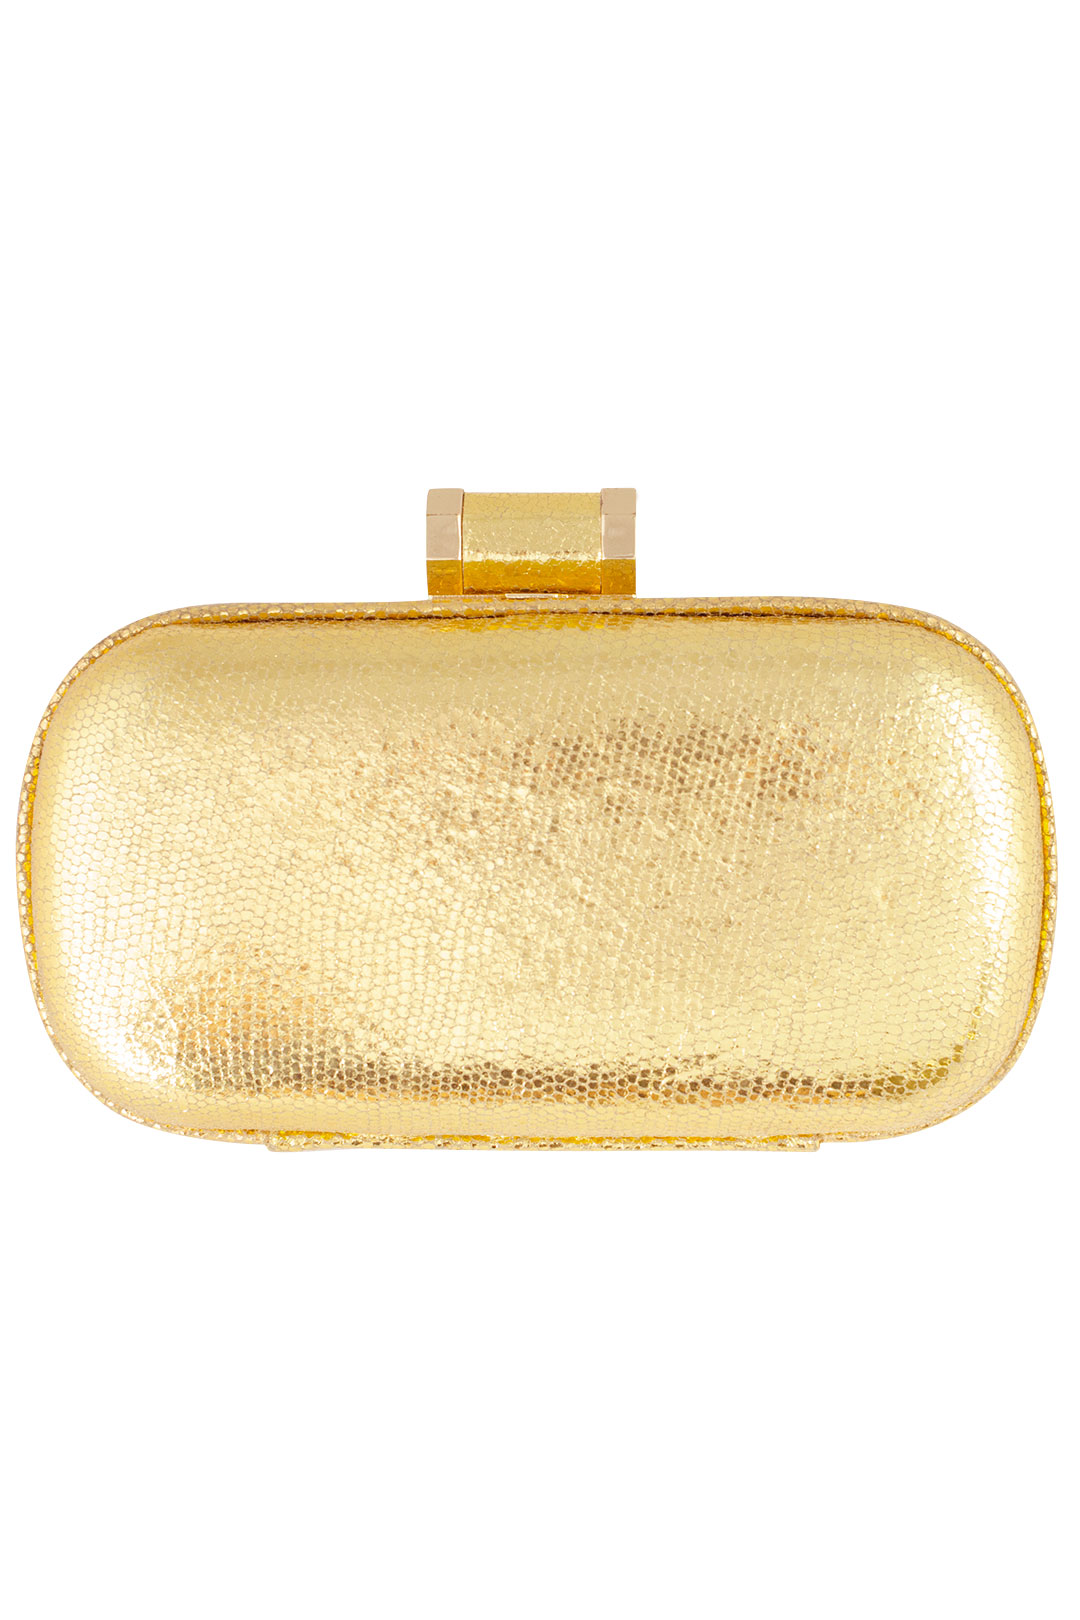 Golden Ticket Clutch by Halston Heritage Handbags at $10 | Rent The Runway